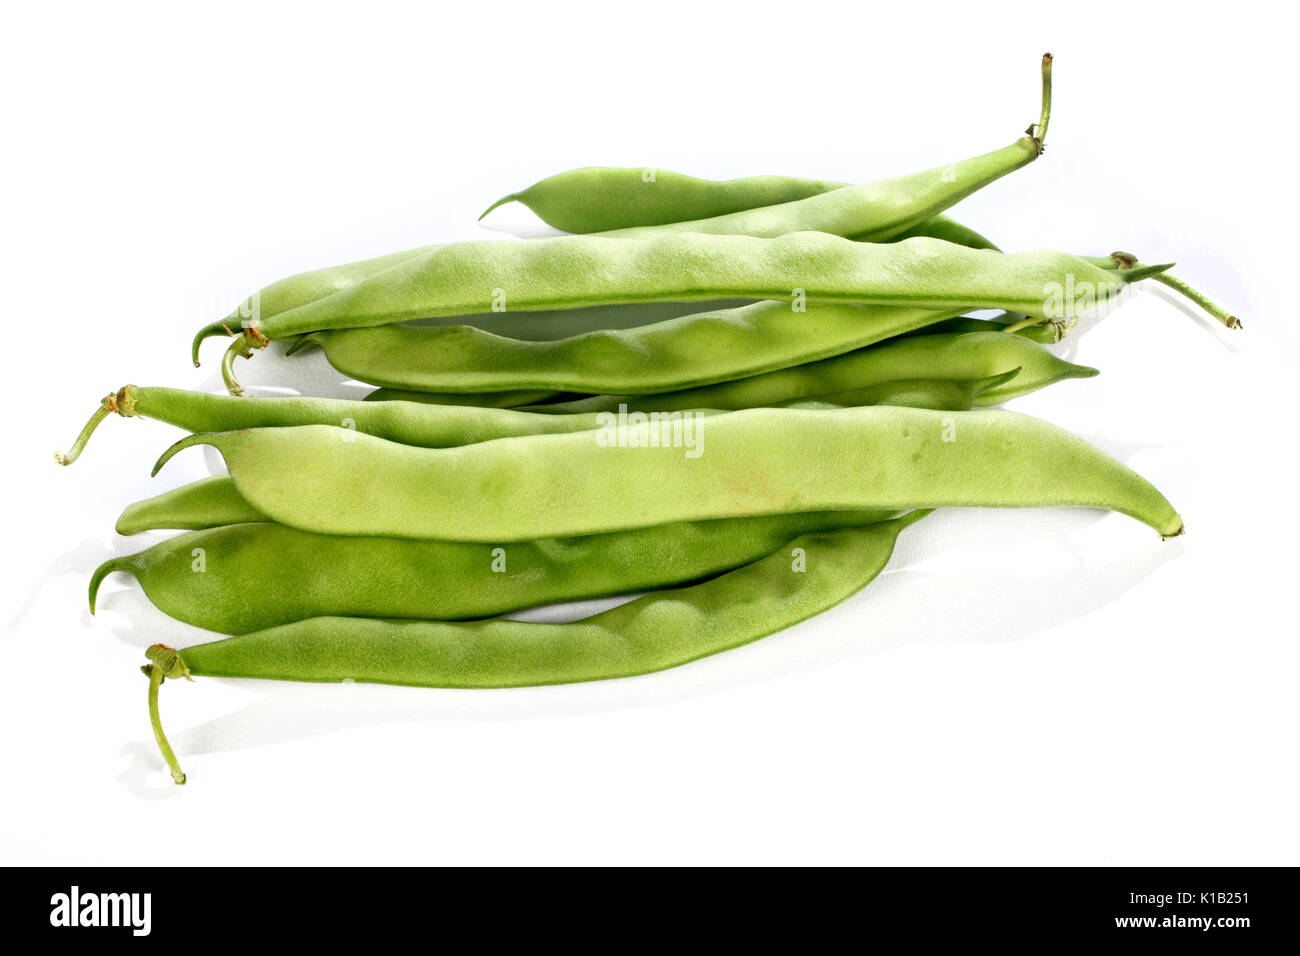 close up shot of green bean isolated over white - Stock Image